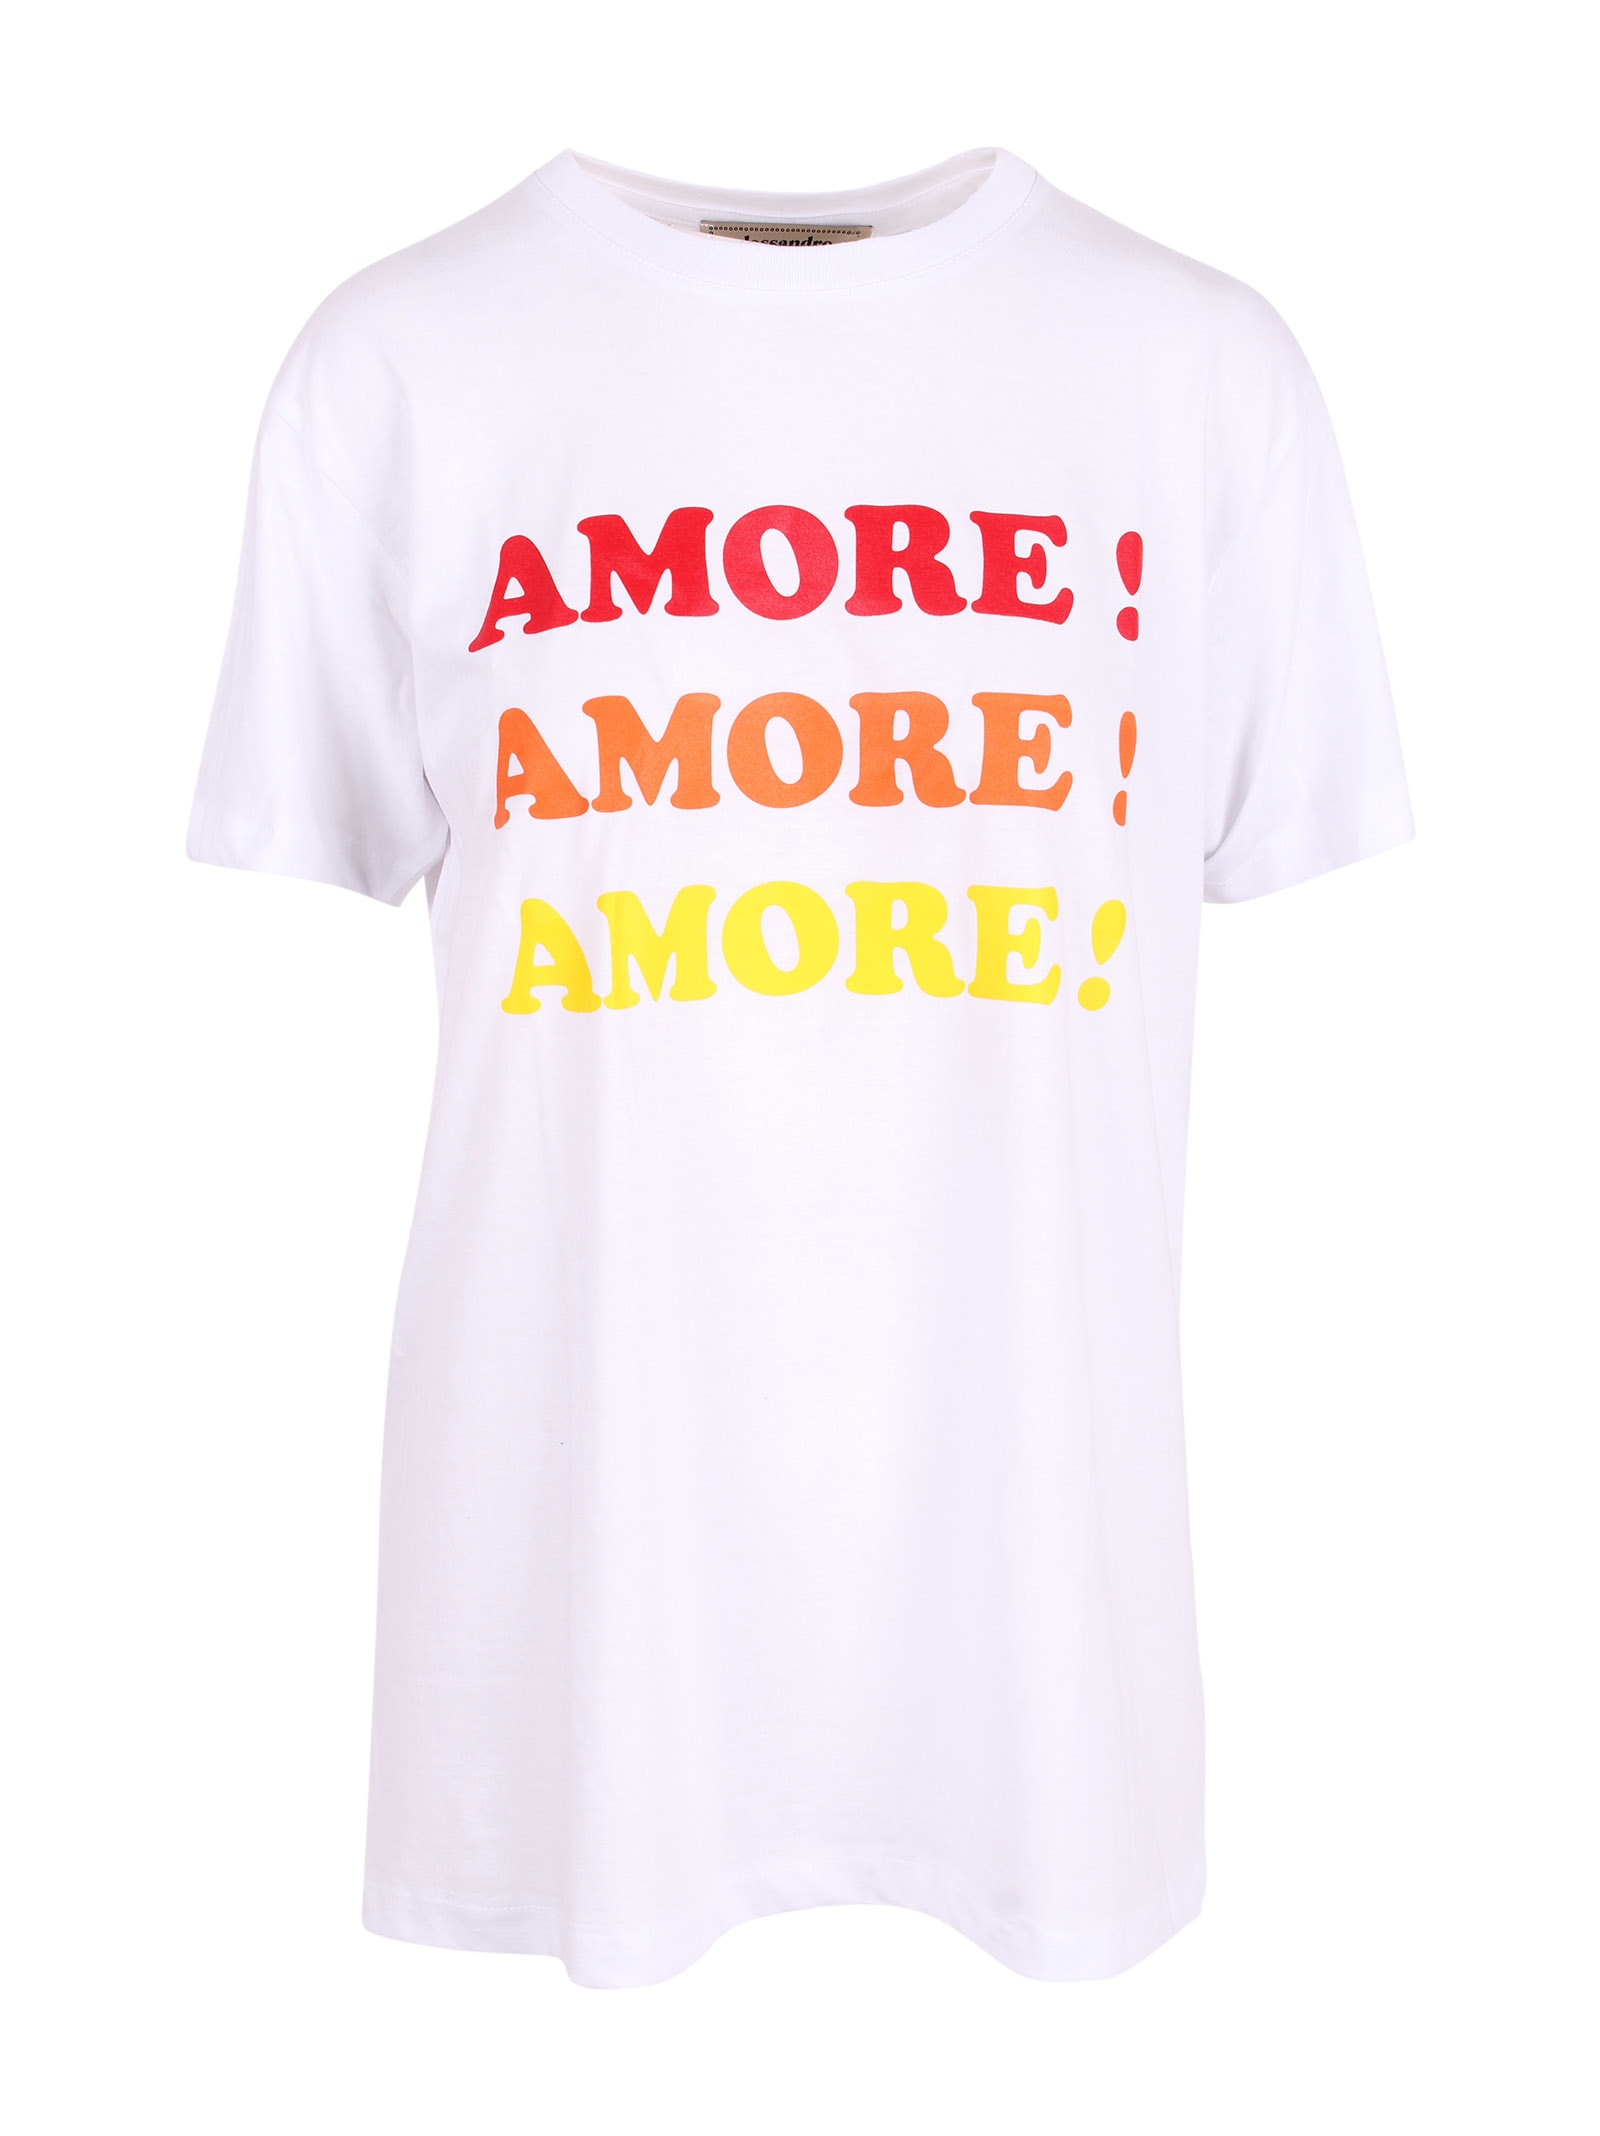 amore! Amore! Amore! Cotton T-shirt